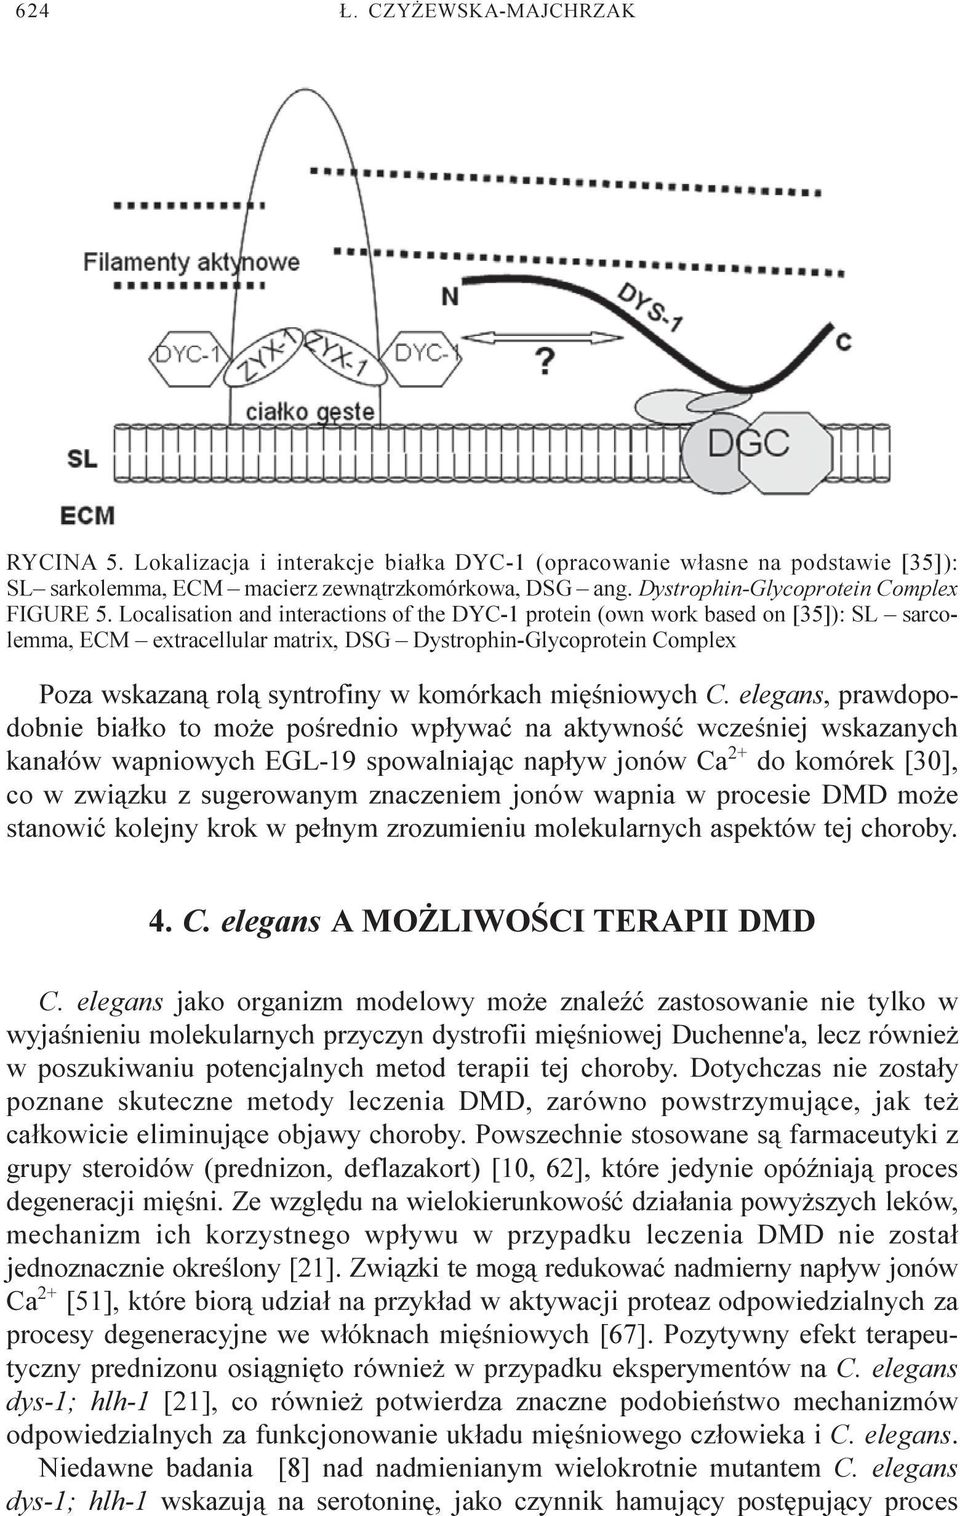 Localisation and interactions of the DYC-1 protein (own work based on [35]): SL sarcolemma, ECM extracellular matrix, DSG Dystrophin-Glycoprotein Complex Poza wskazan¹ rol¹ syntrofiny w komórkach